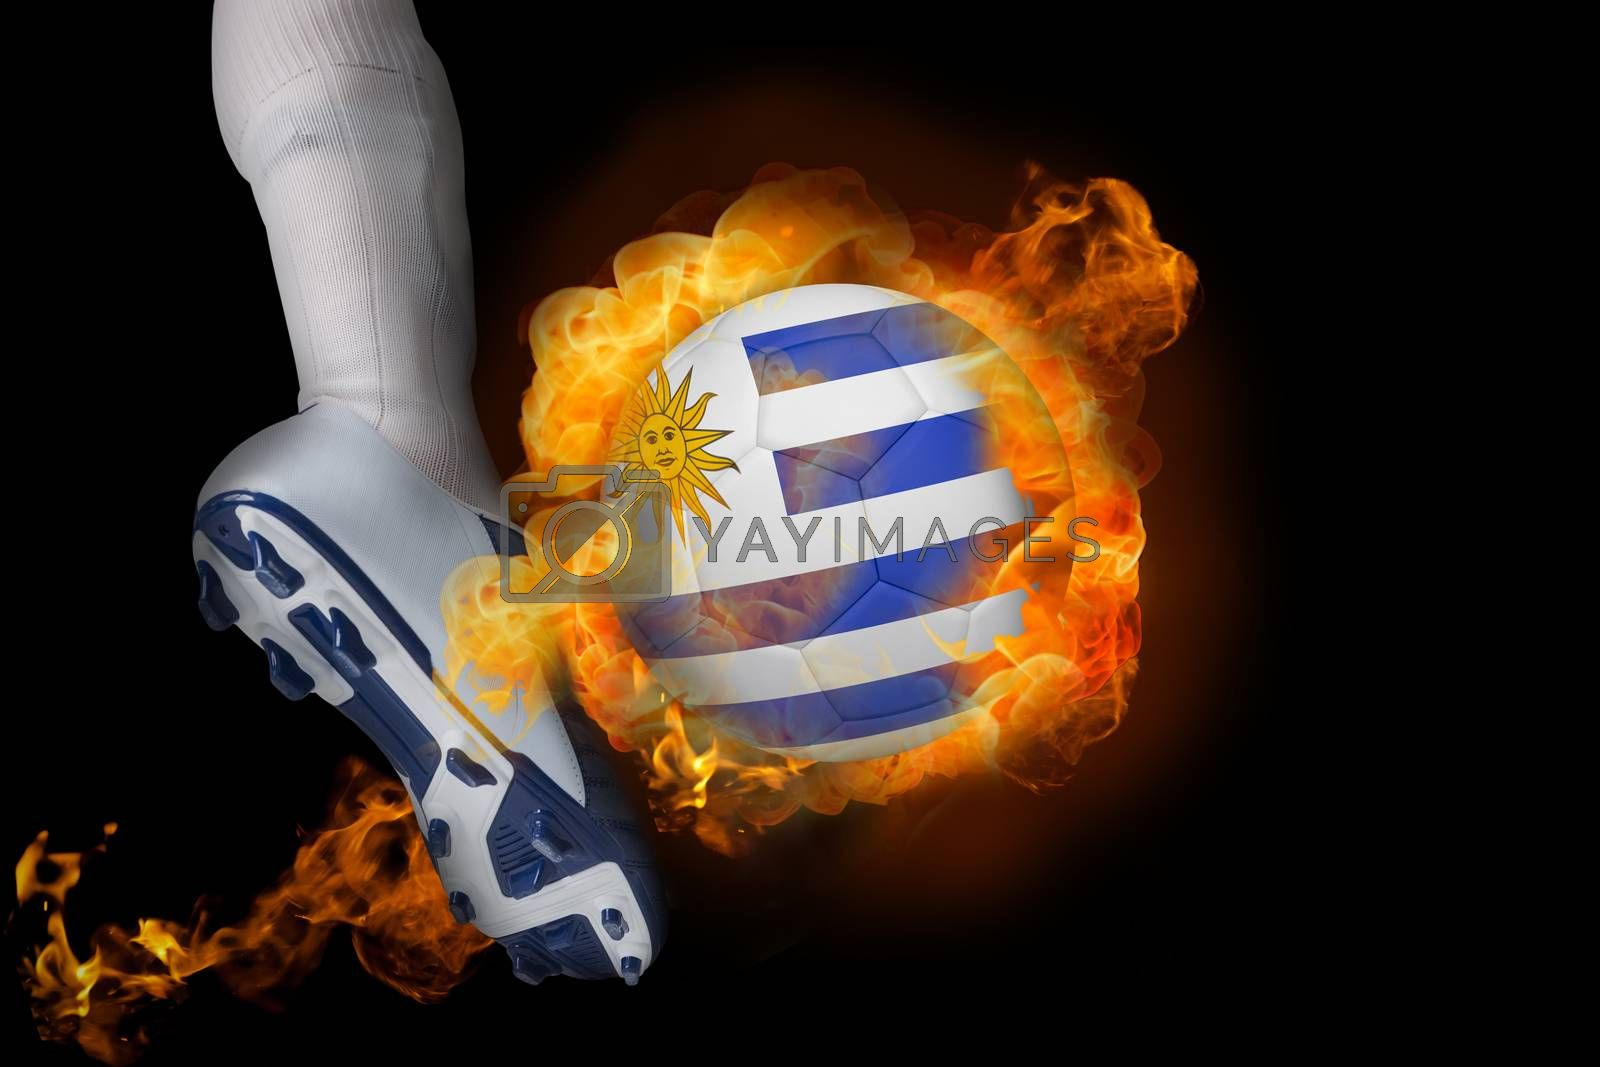 Football player kicking flaming uruguay ball by Wavebreakmedia